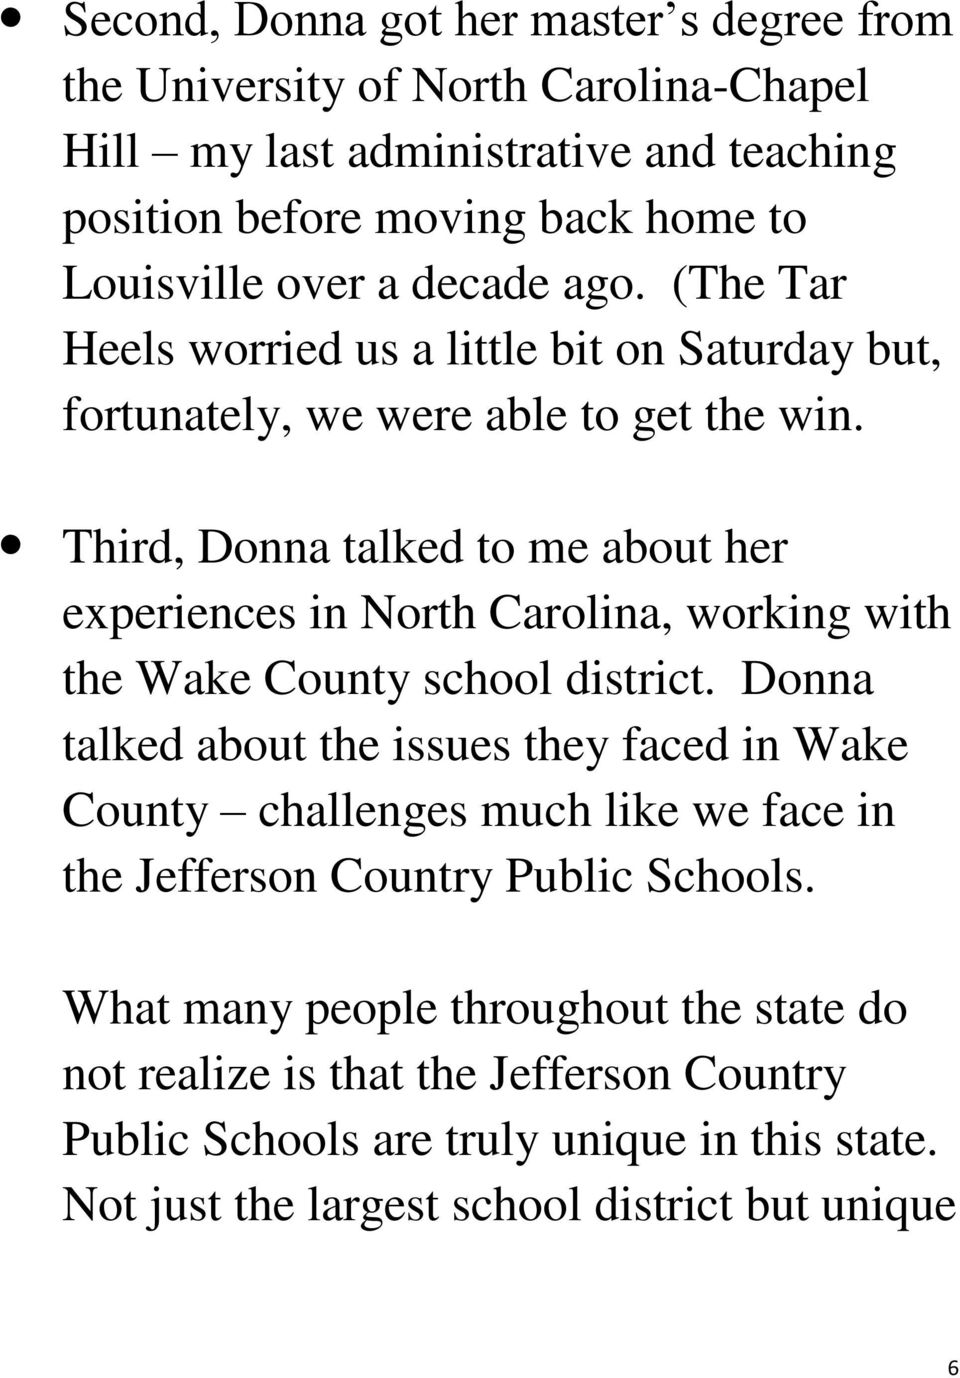 Third, Donna talked to me about her experiences in North Carolina, working with the Wake County school district.